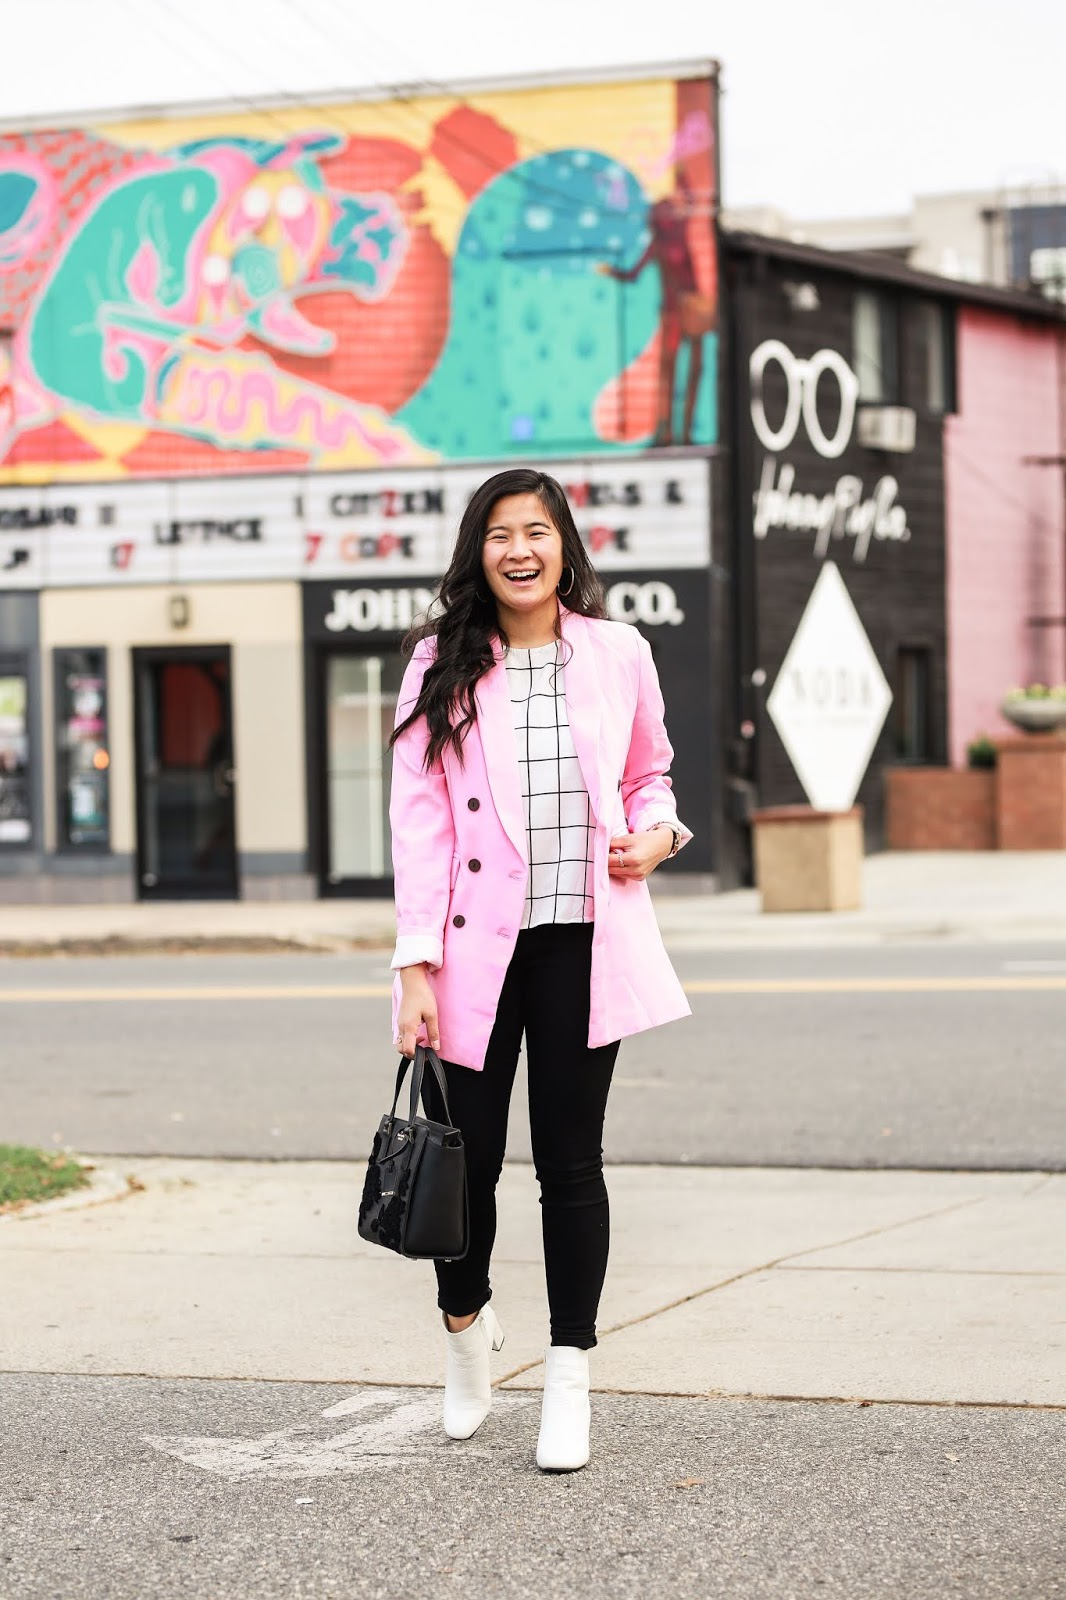 How to style a pink coat for fall / winter